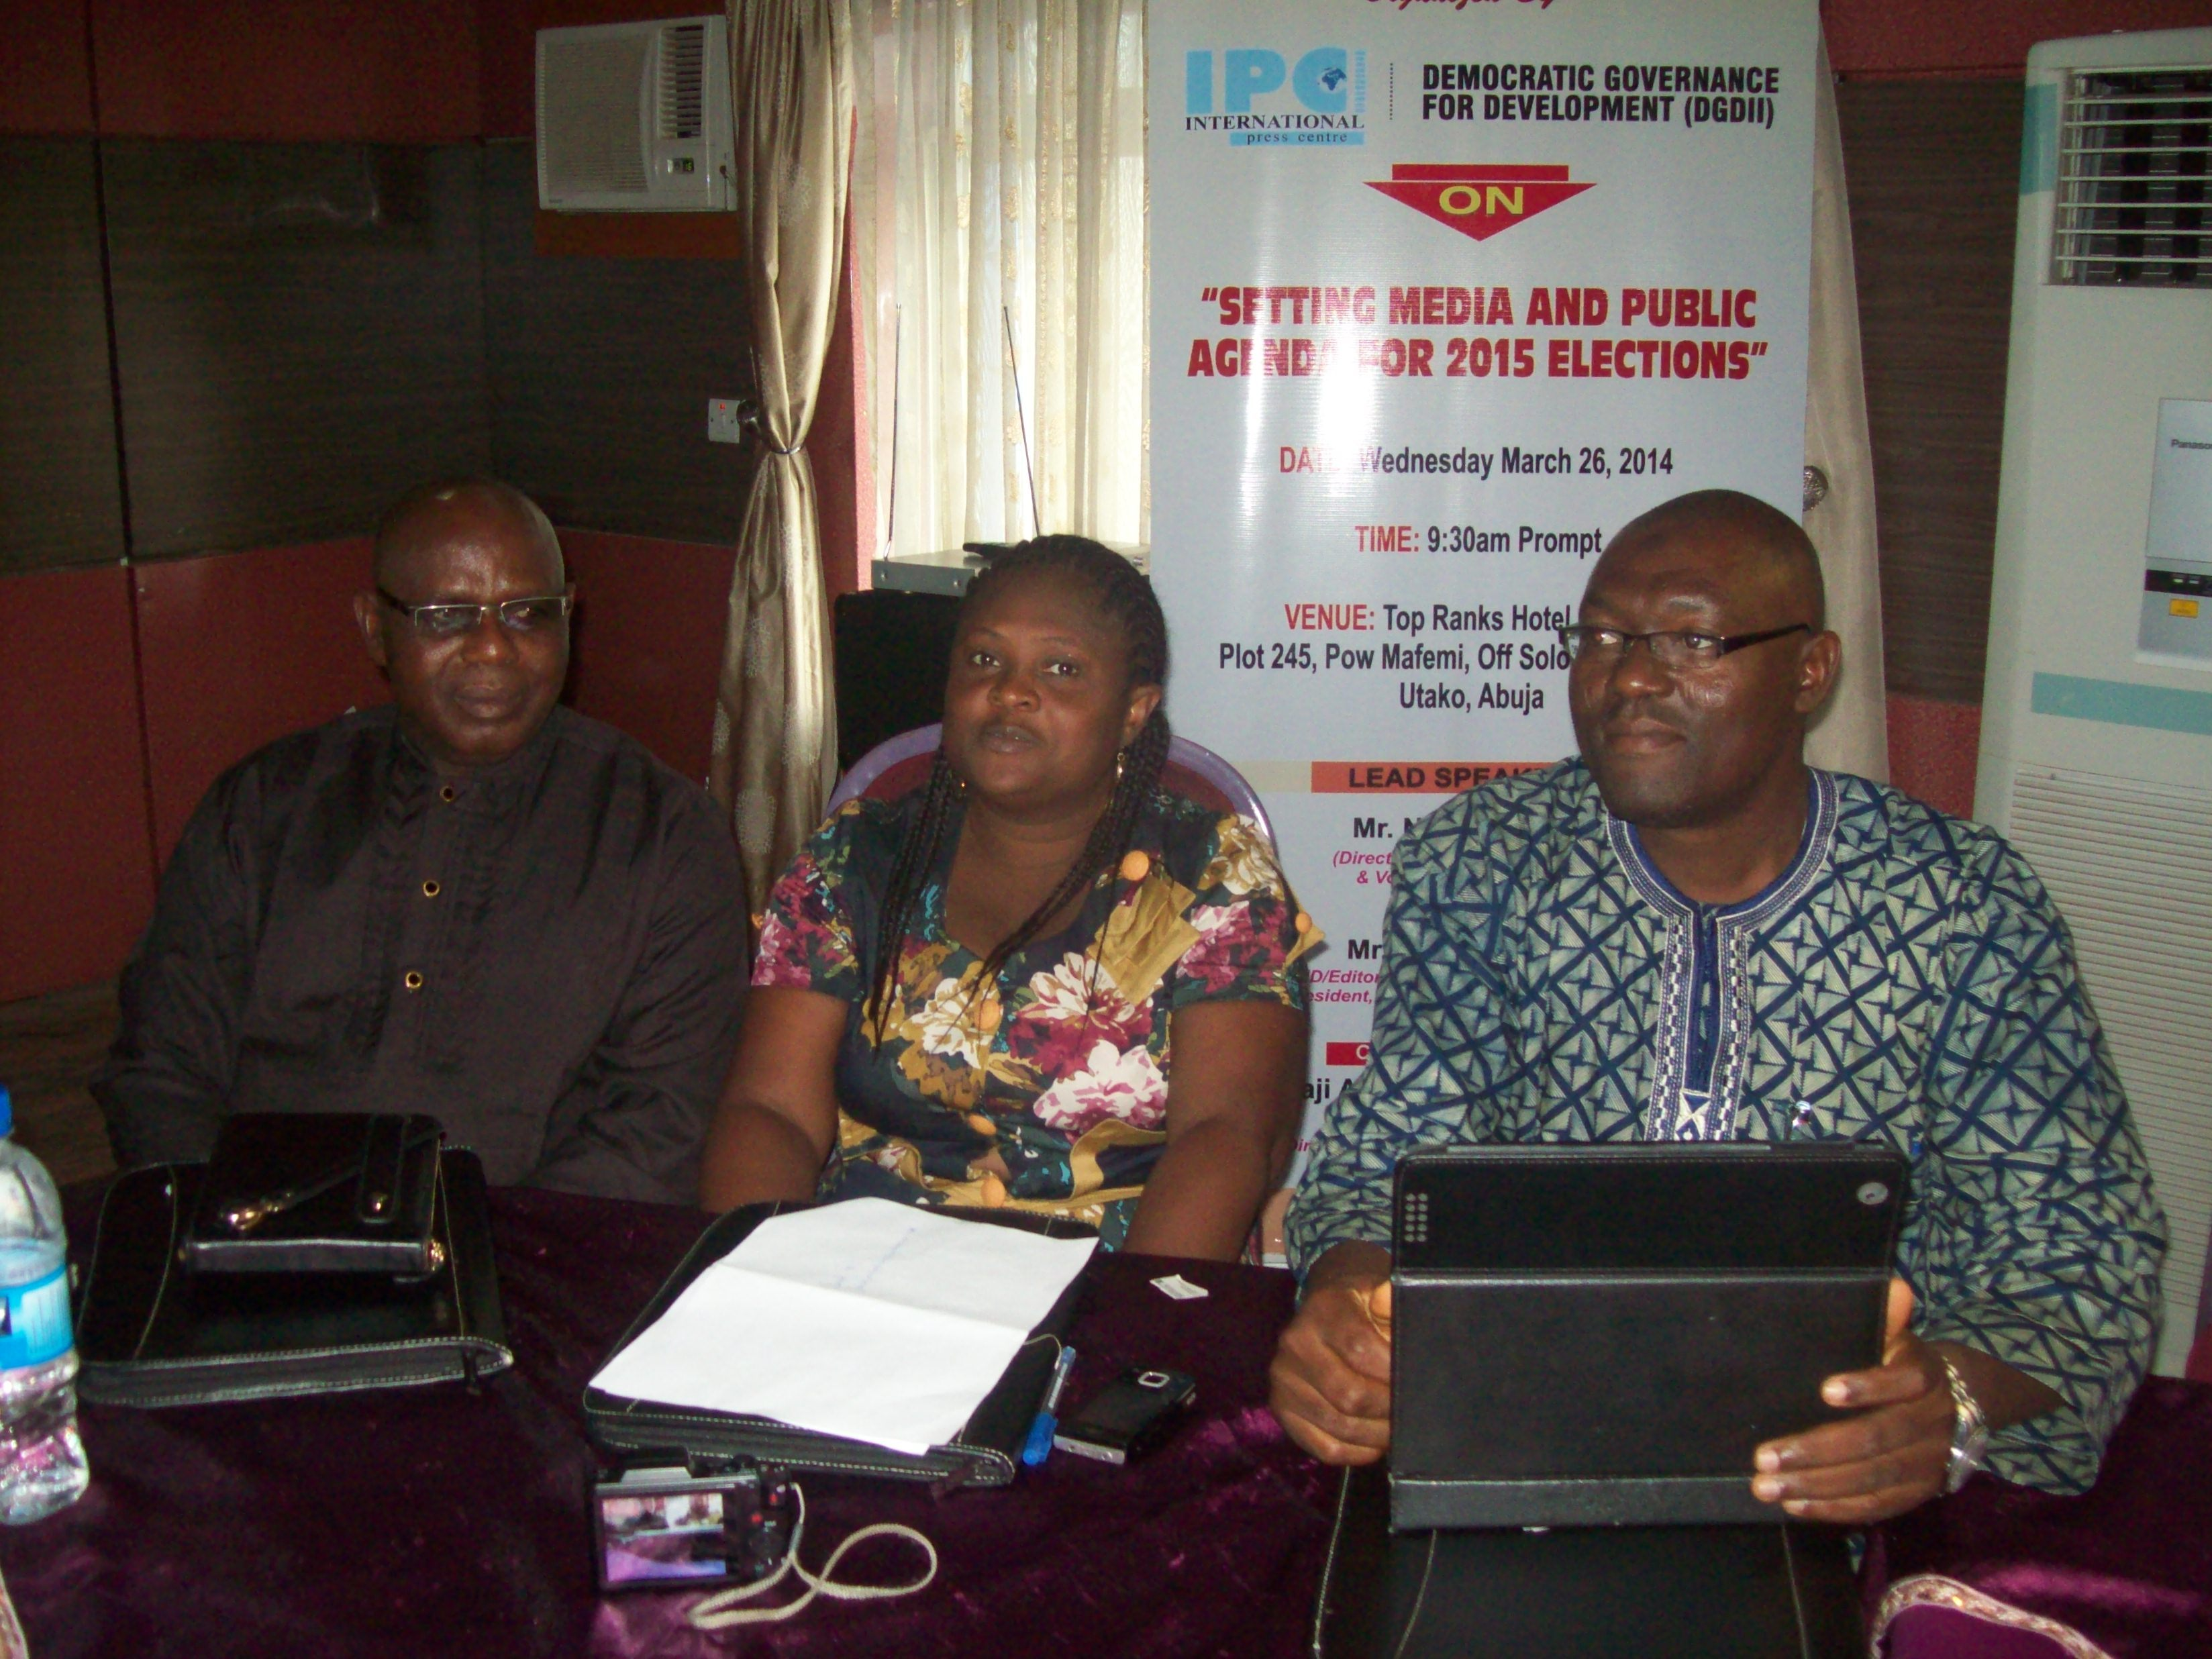 "<span class=""post_or_pages_title"">WORLD PRESS DAY: IPC urges Nigerian media to rise against impunity</span>"